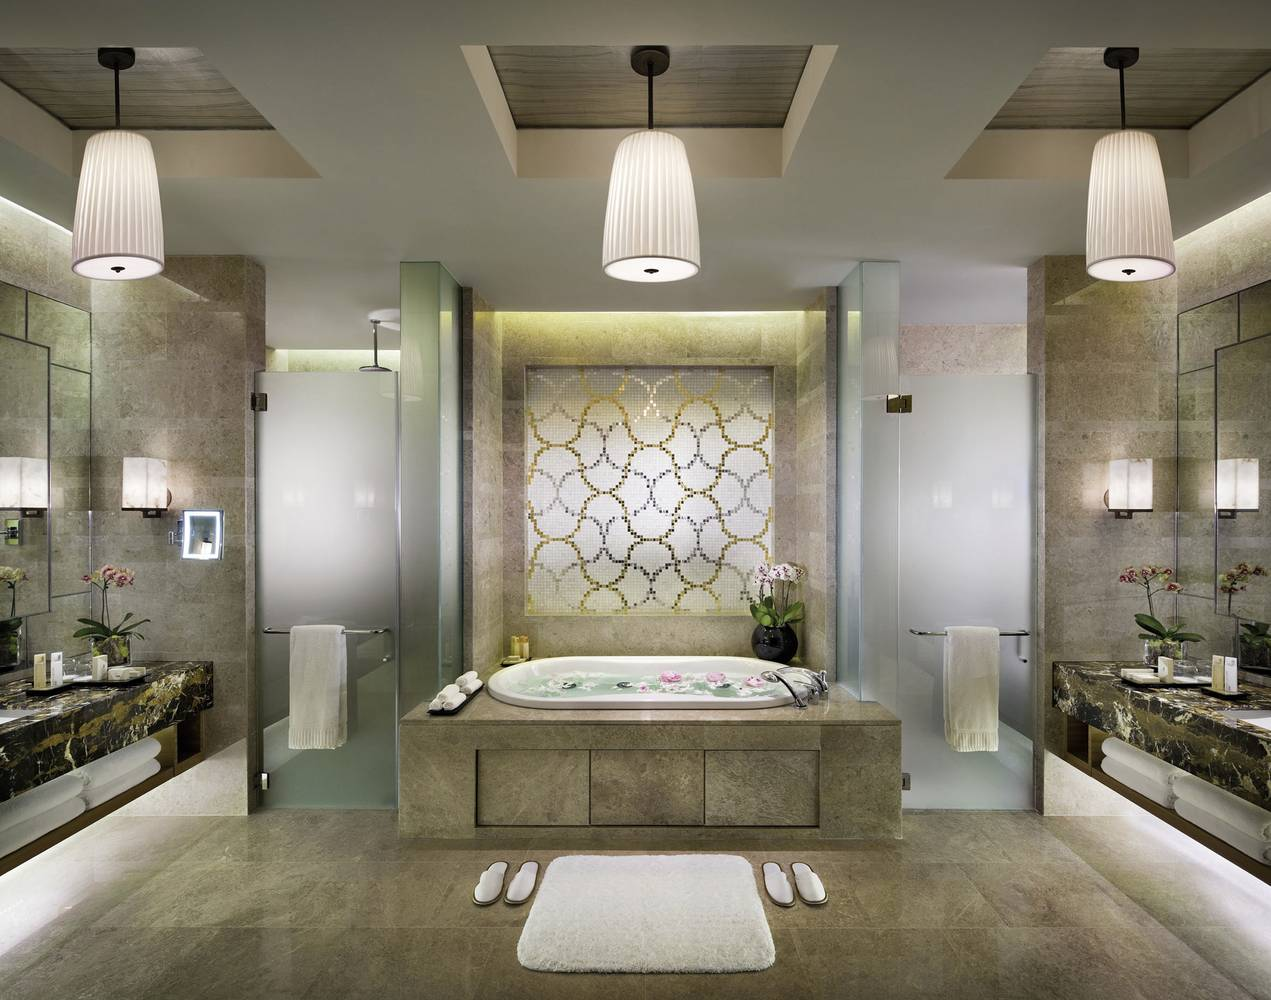 Luxurious Bathroom Design In The City State Singapore The Marina